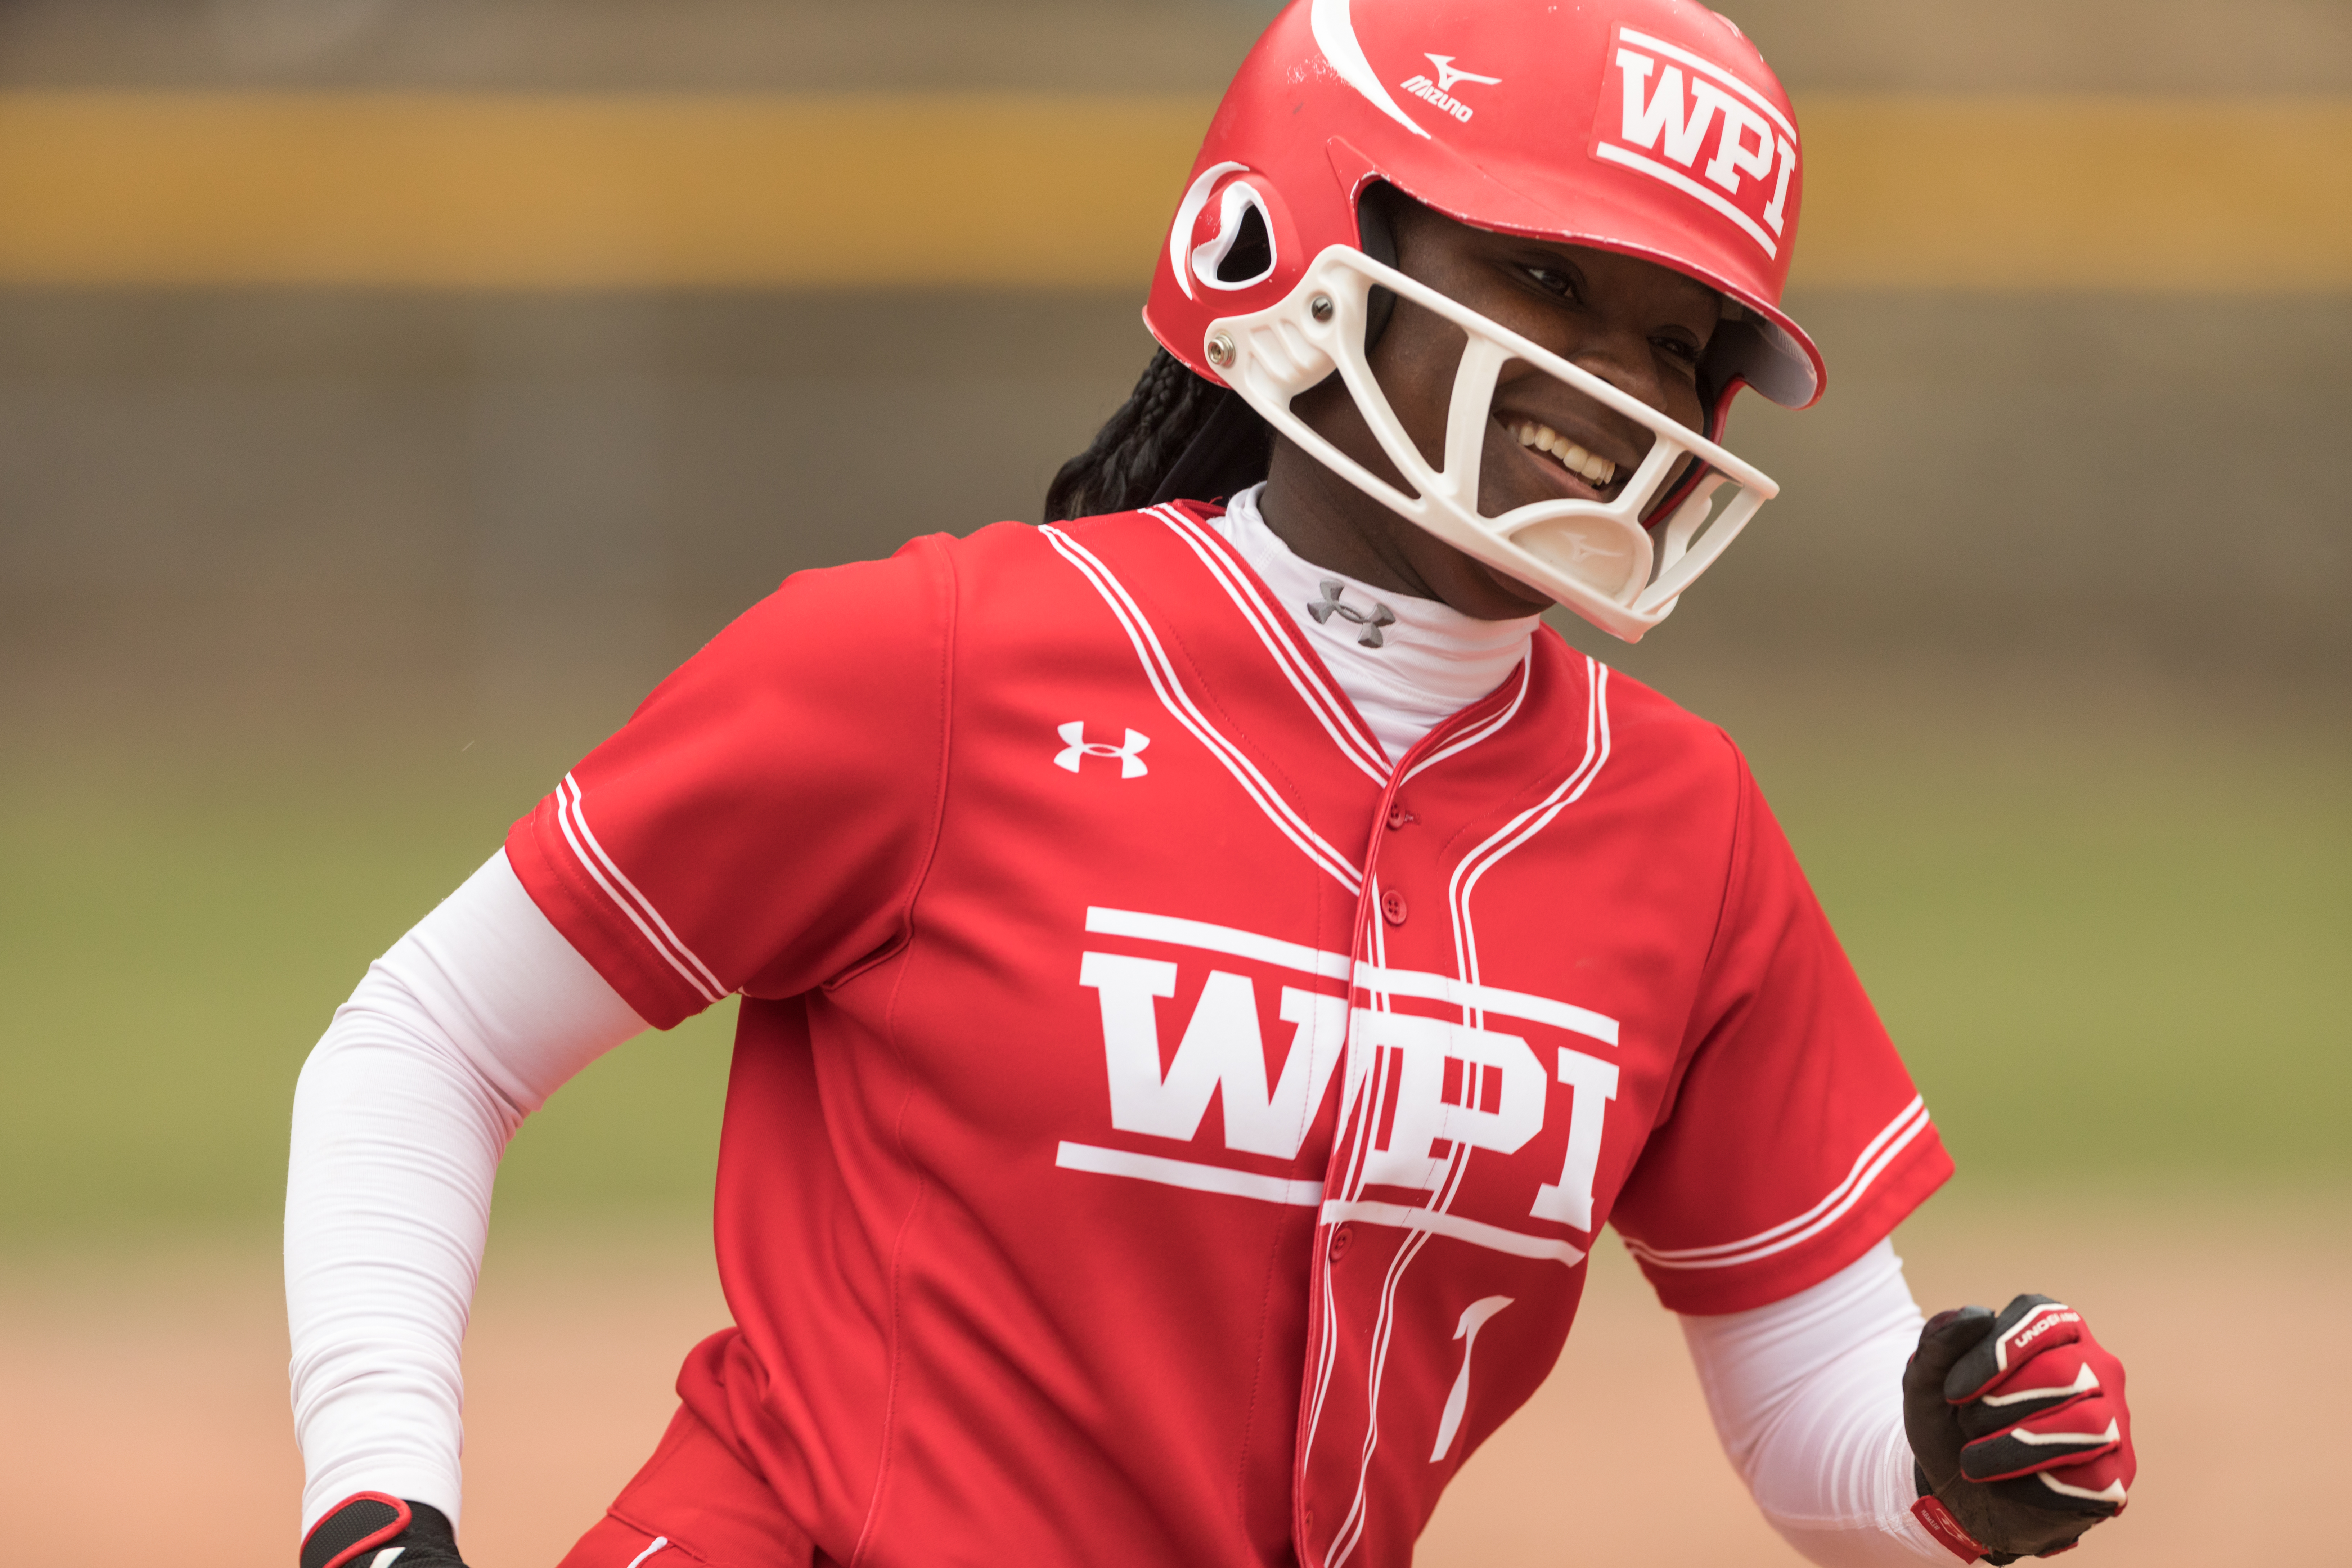 "Ama Biney smiles while rounding the bases during a WPI softball game. Her helmet and jersey are red and emblazoned with ""WPI."""